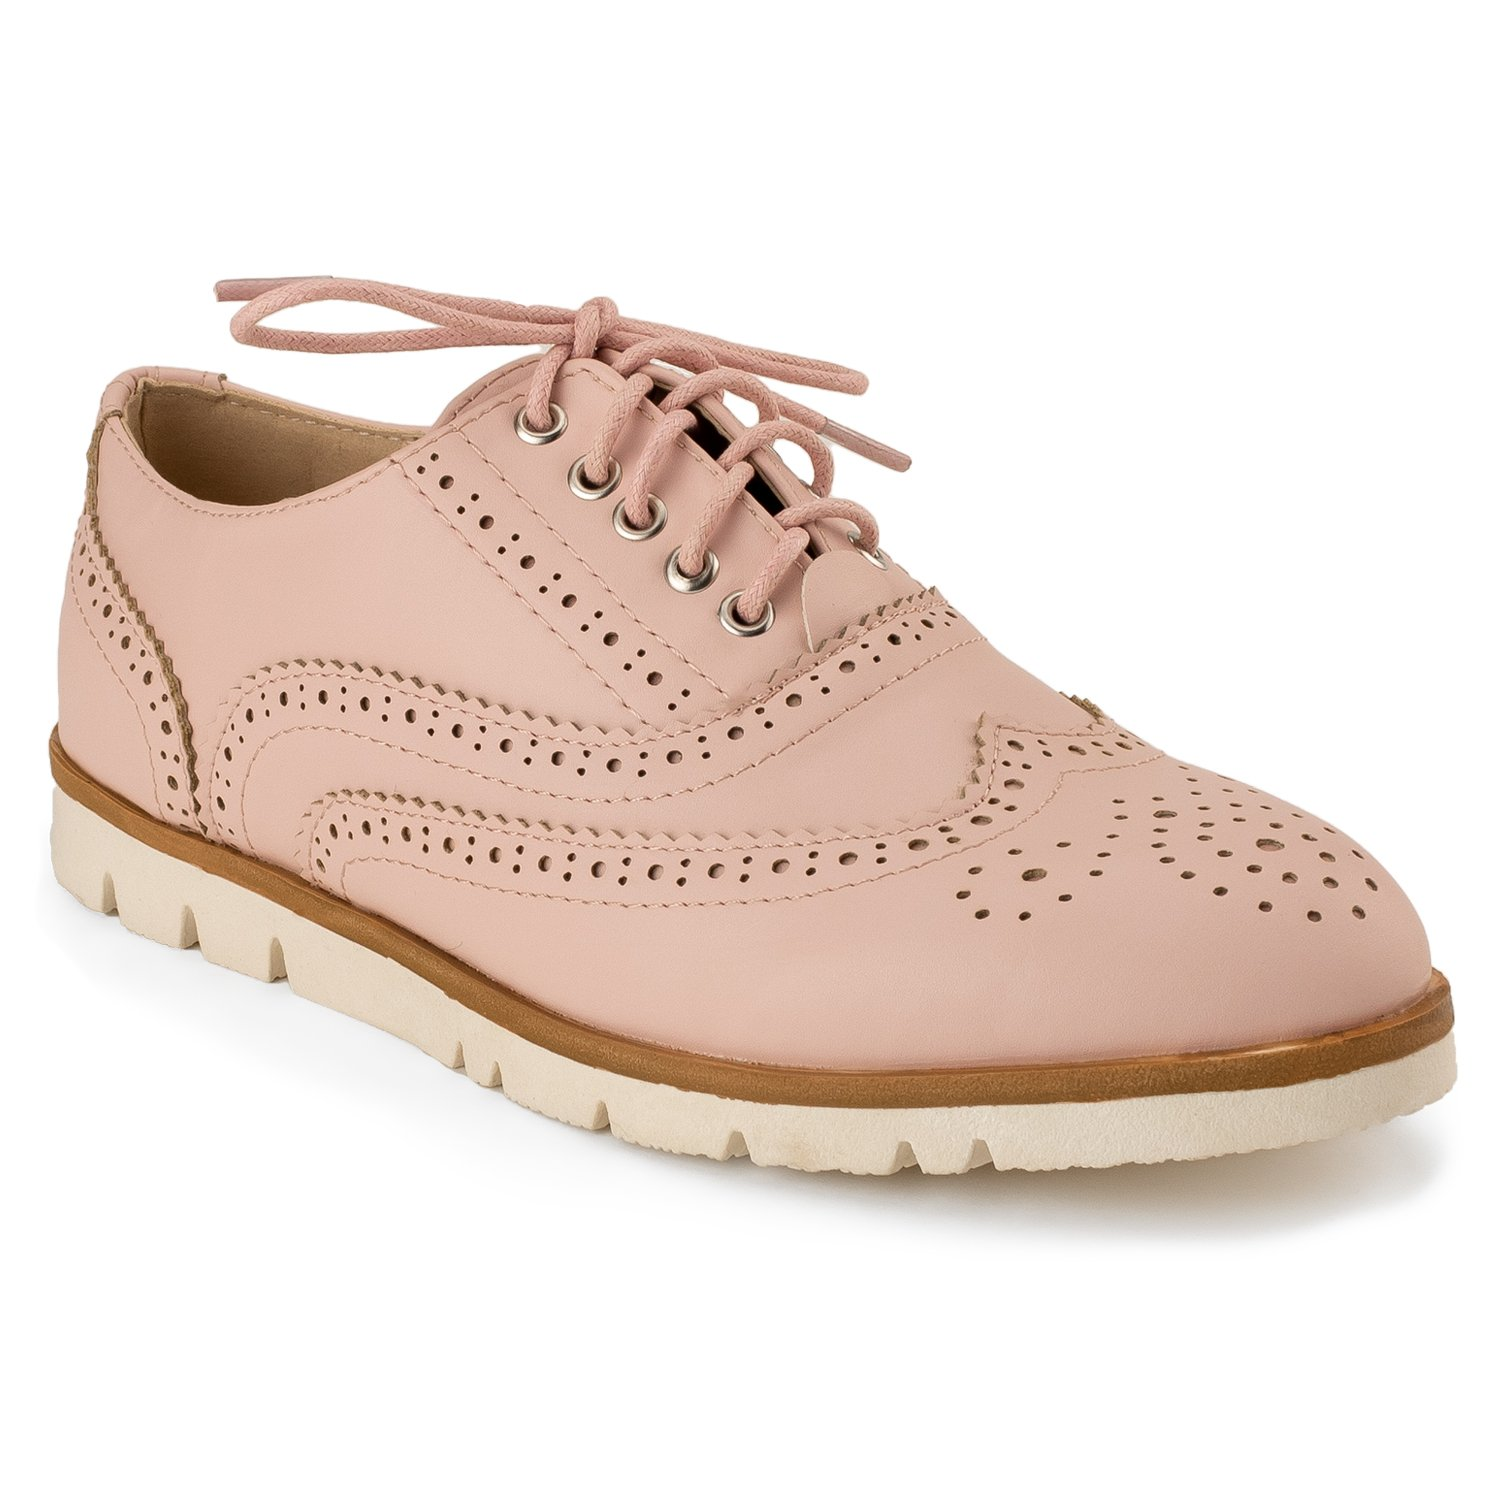 RF ROOM OF FASHION Women's Wing Tip Saddle Lace up Platform Oxford Flats - Trendy Flatform Shoes Pink (8.5)